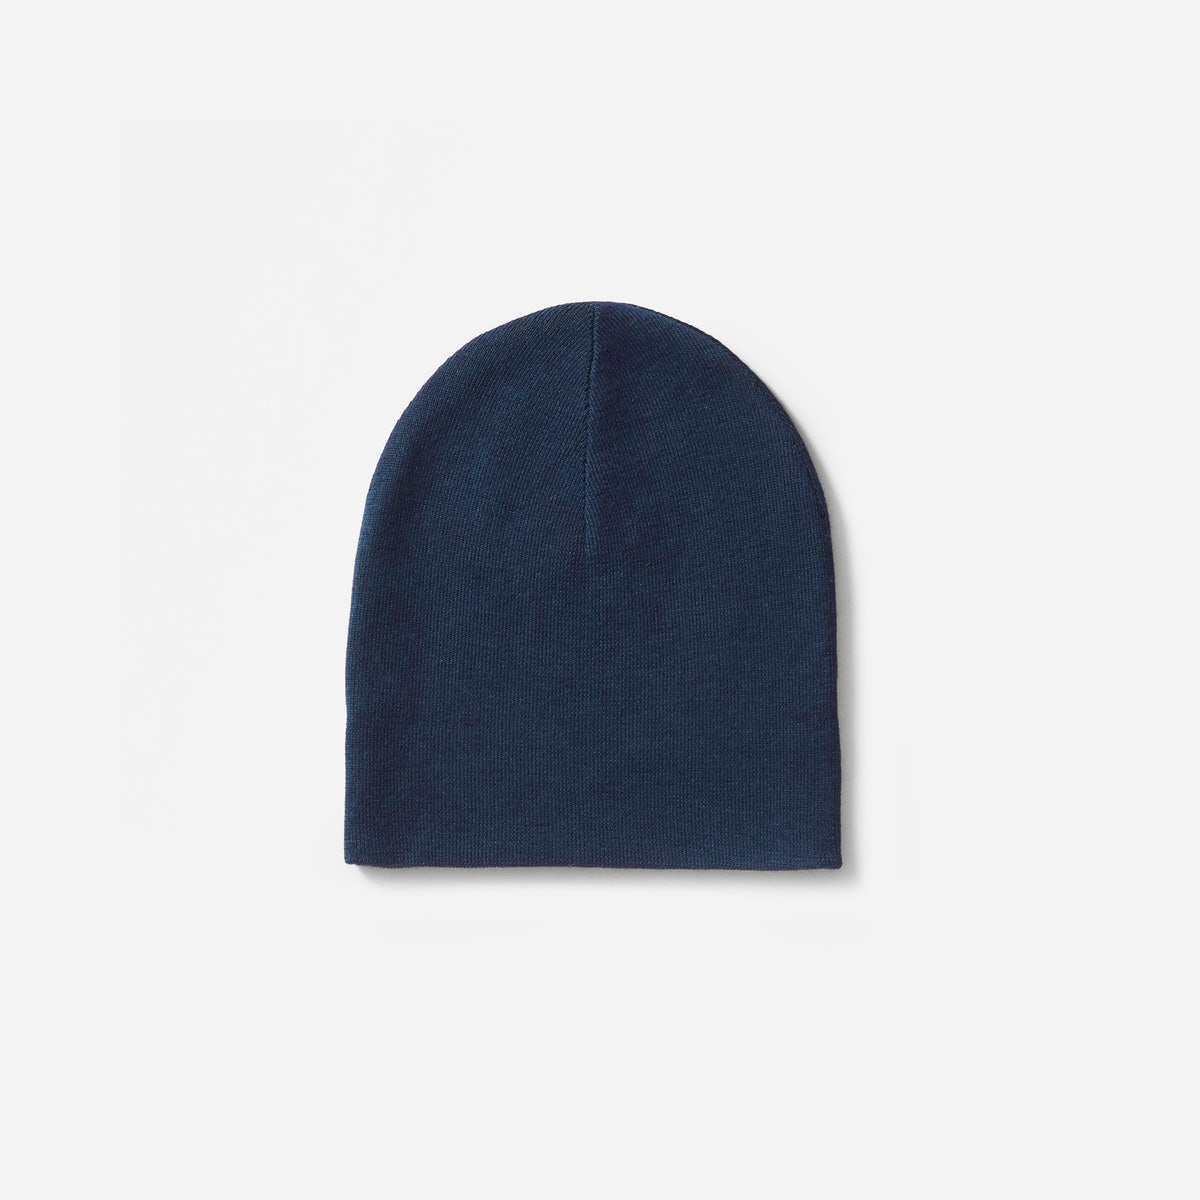 The Merino Wool Beanie